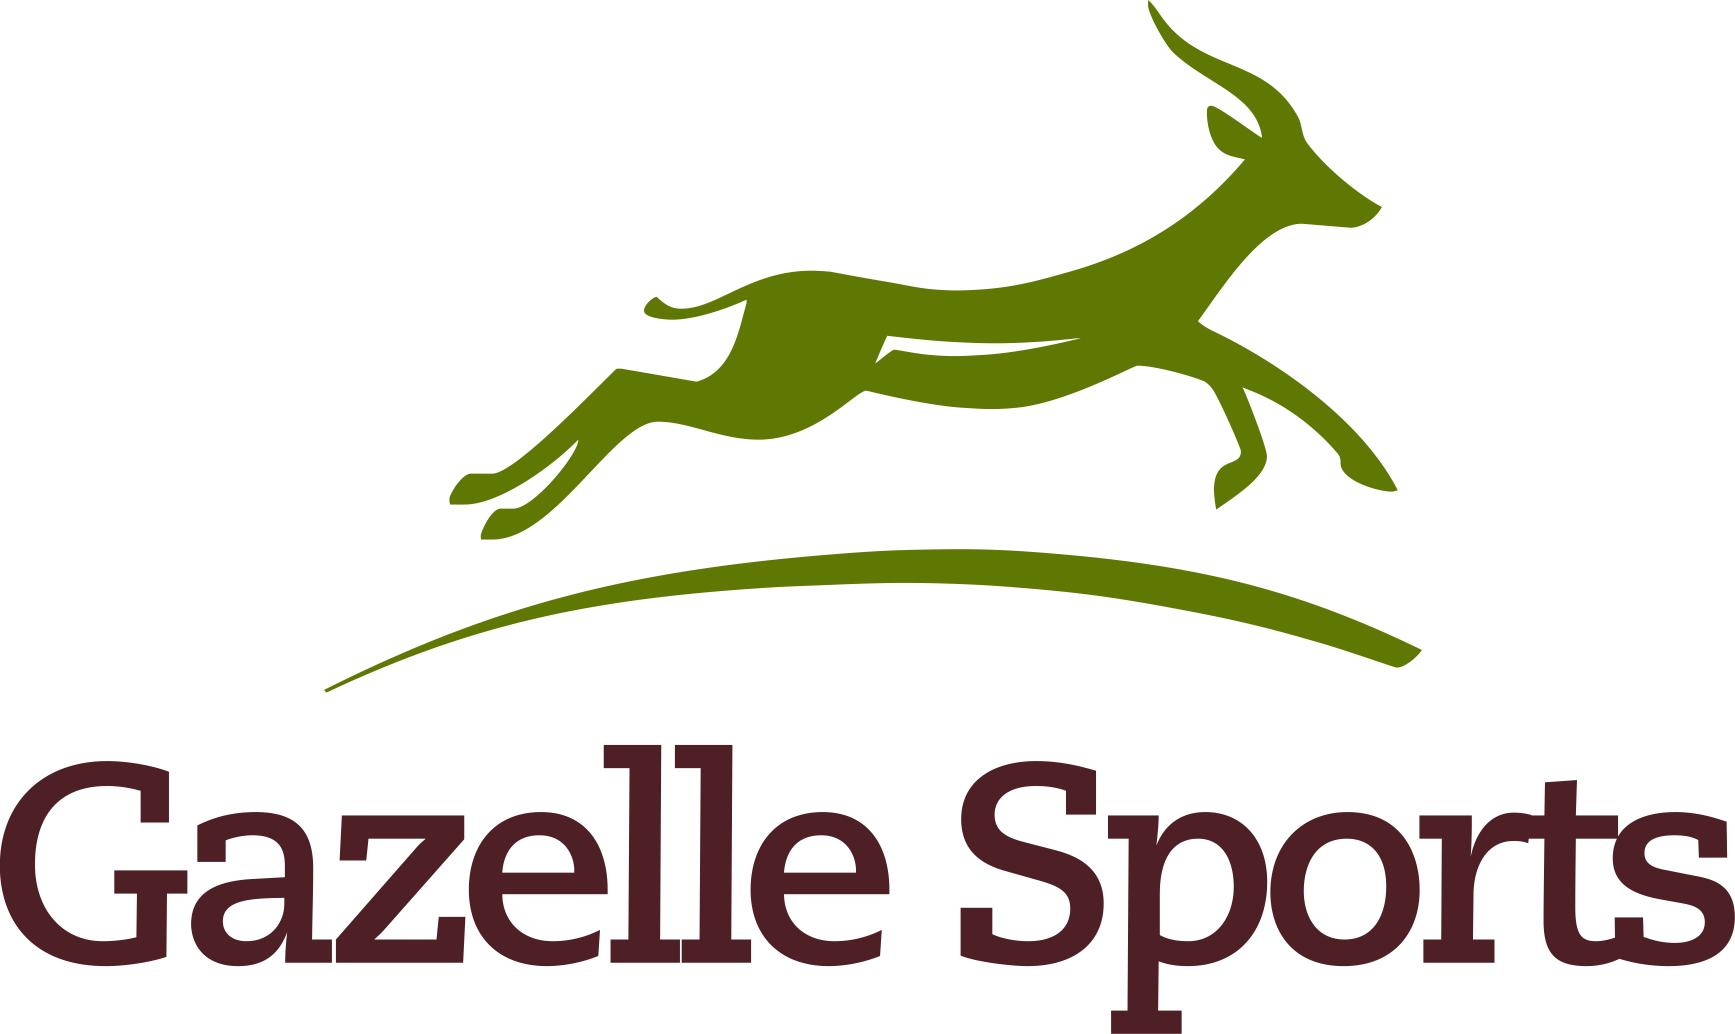 2009 Gazelle Sports logo 2c.jpg